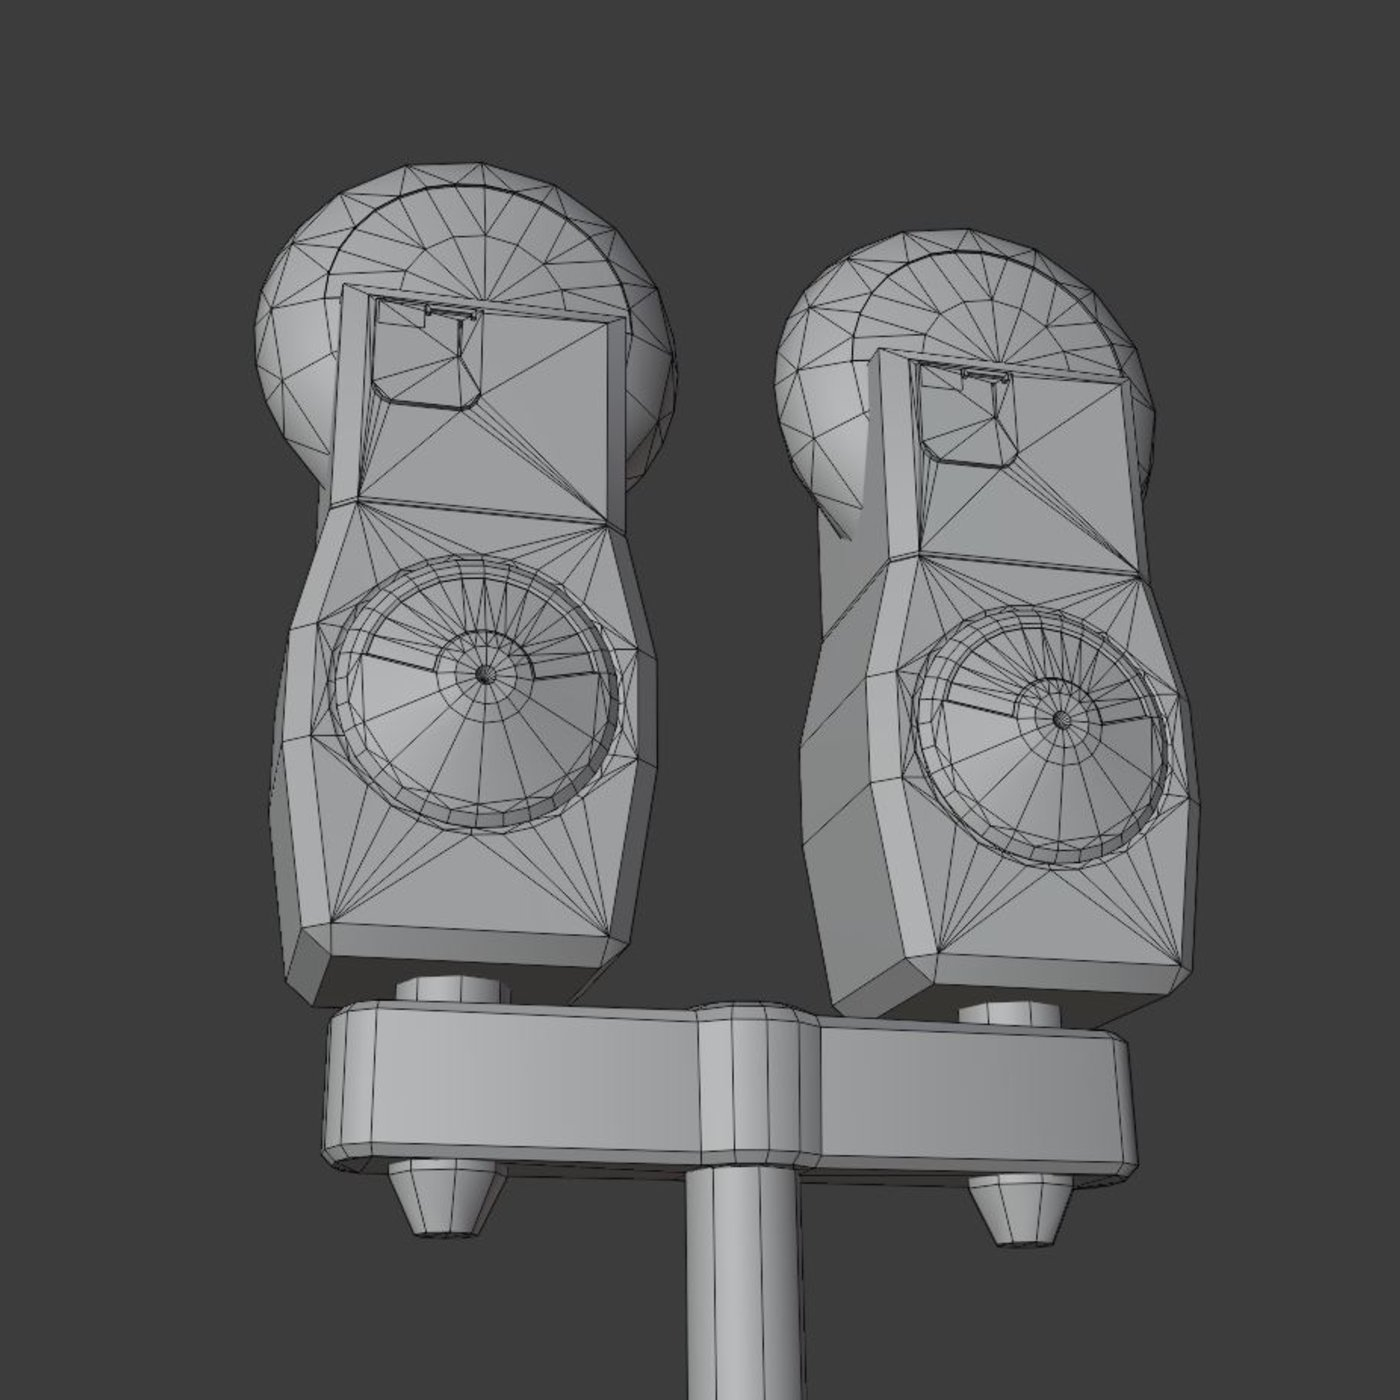 Parking Meter x 2 Low-poly Version